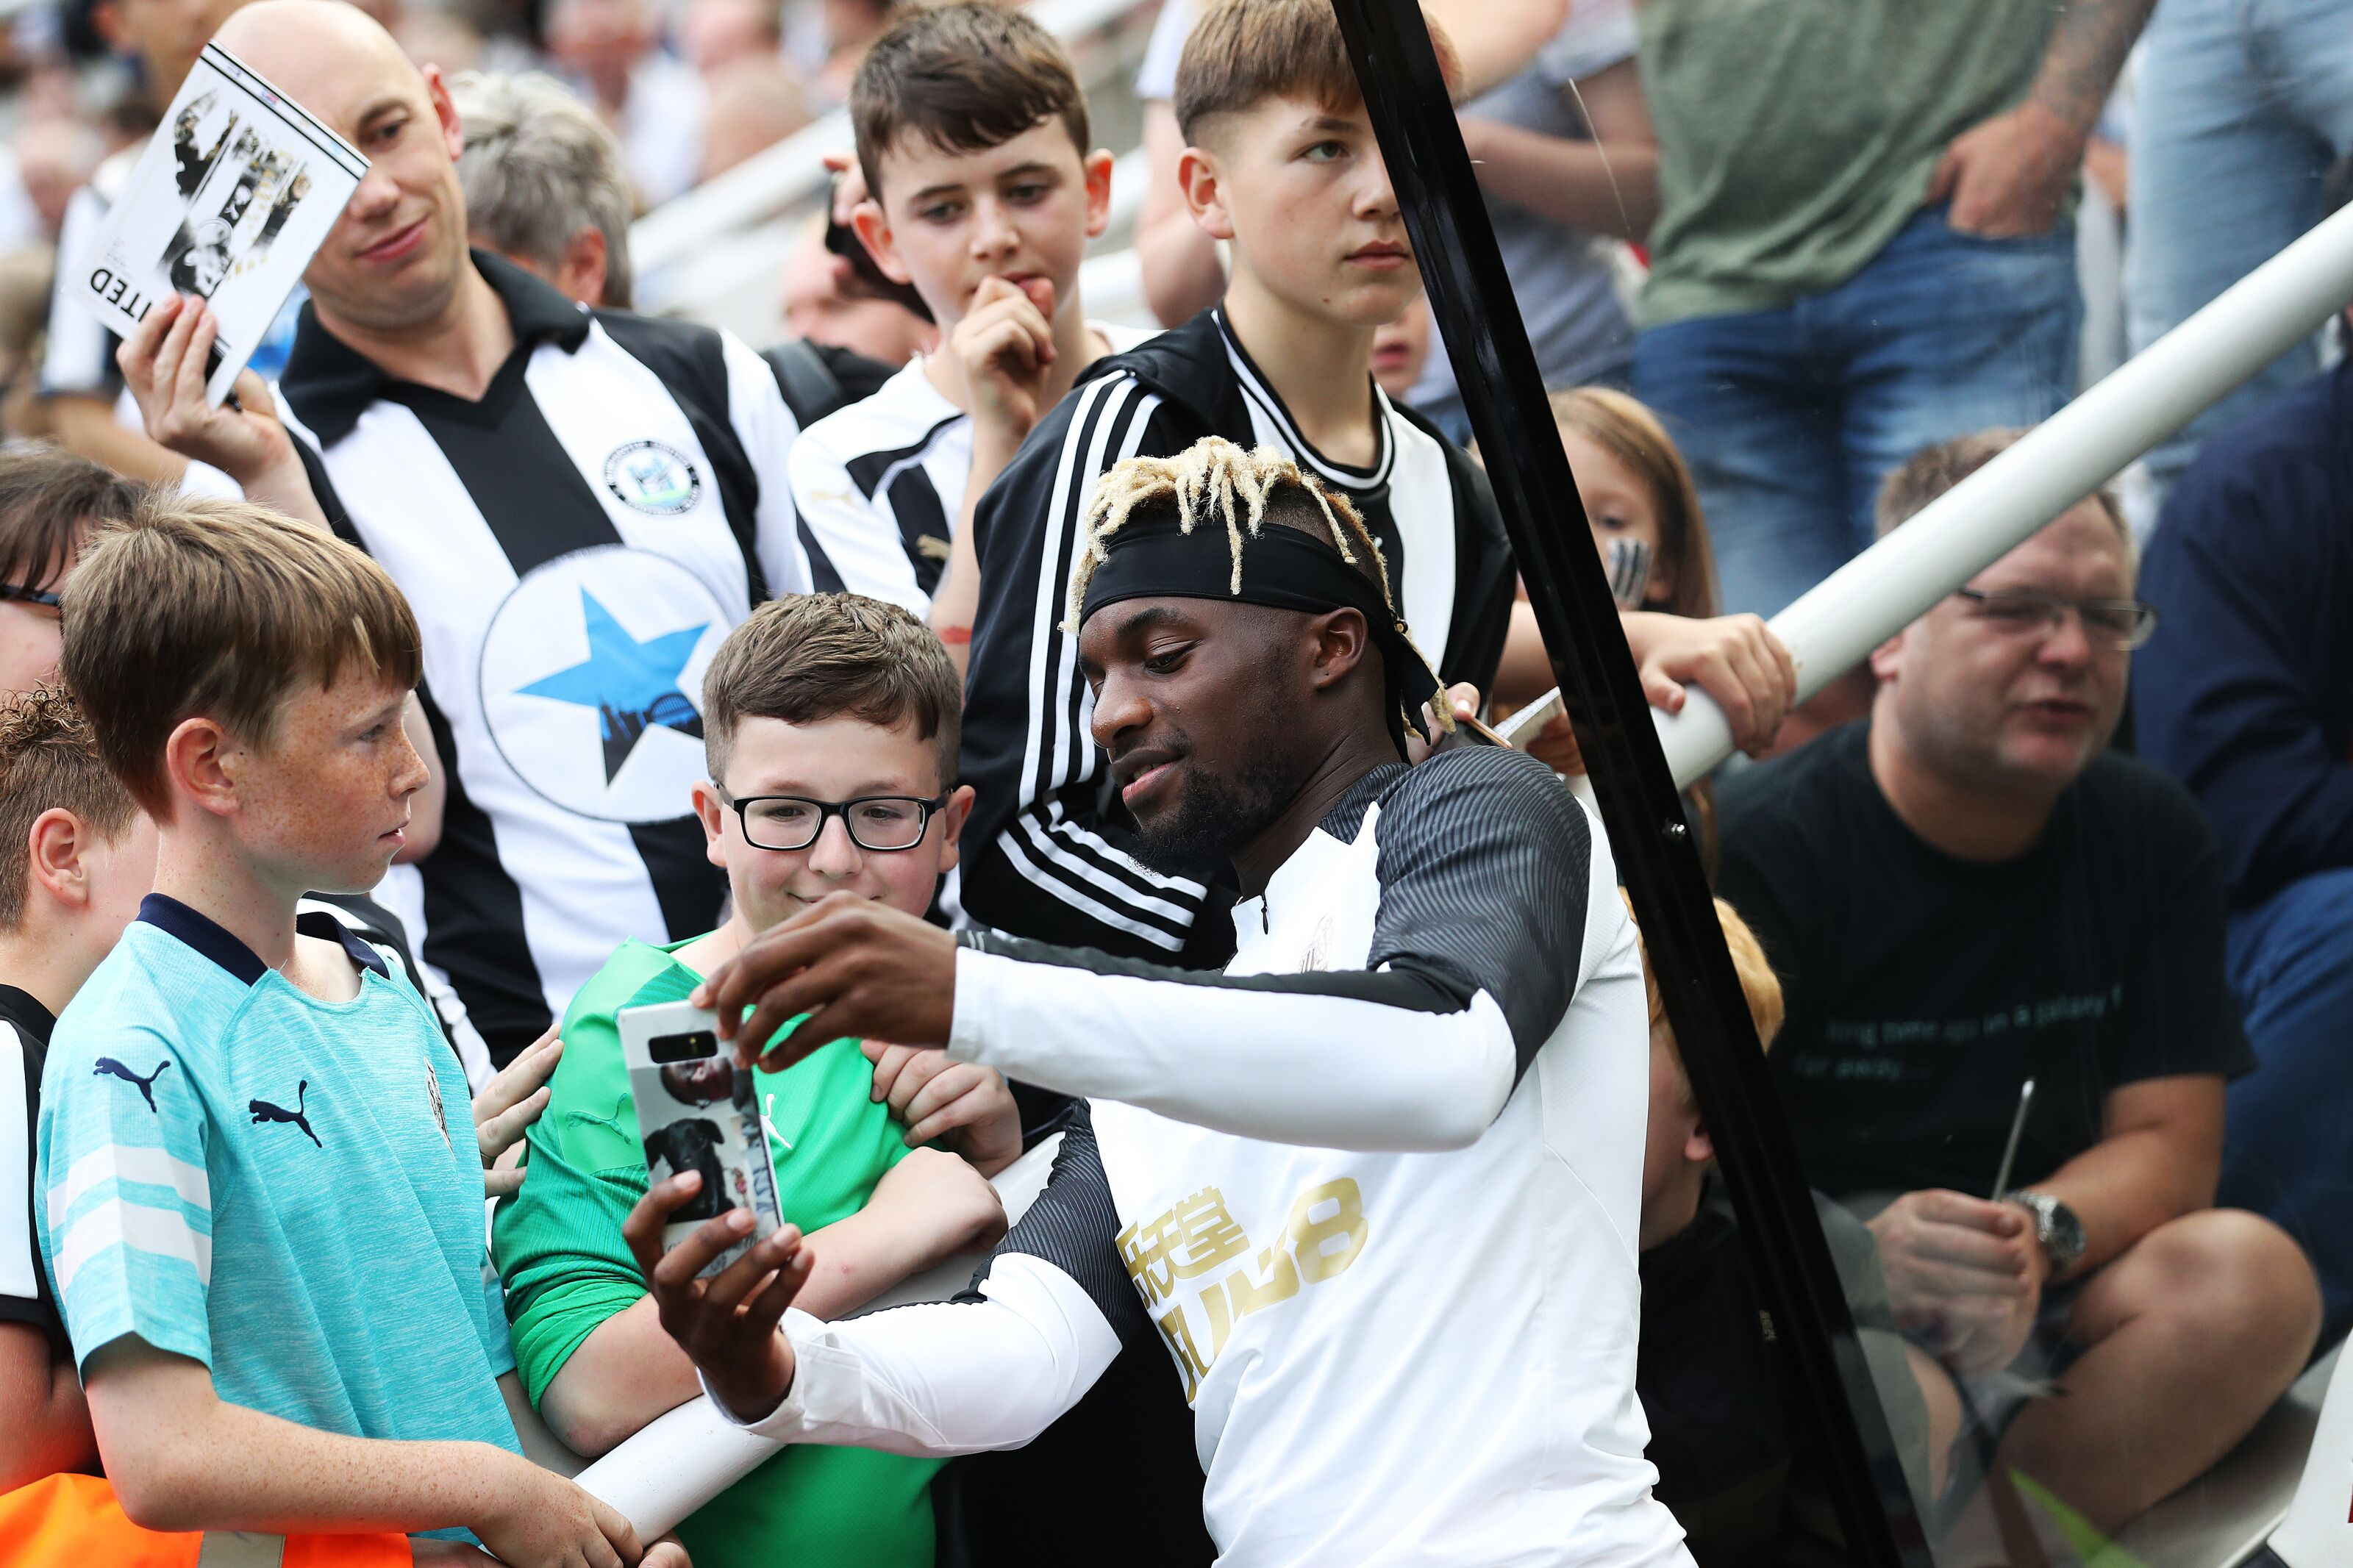 ASM's accessibility makes him a Newcastle United fan favorite already